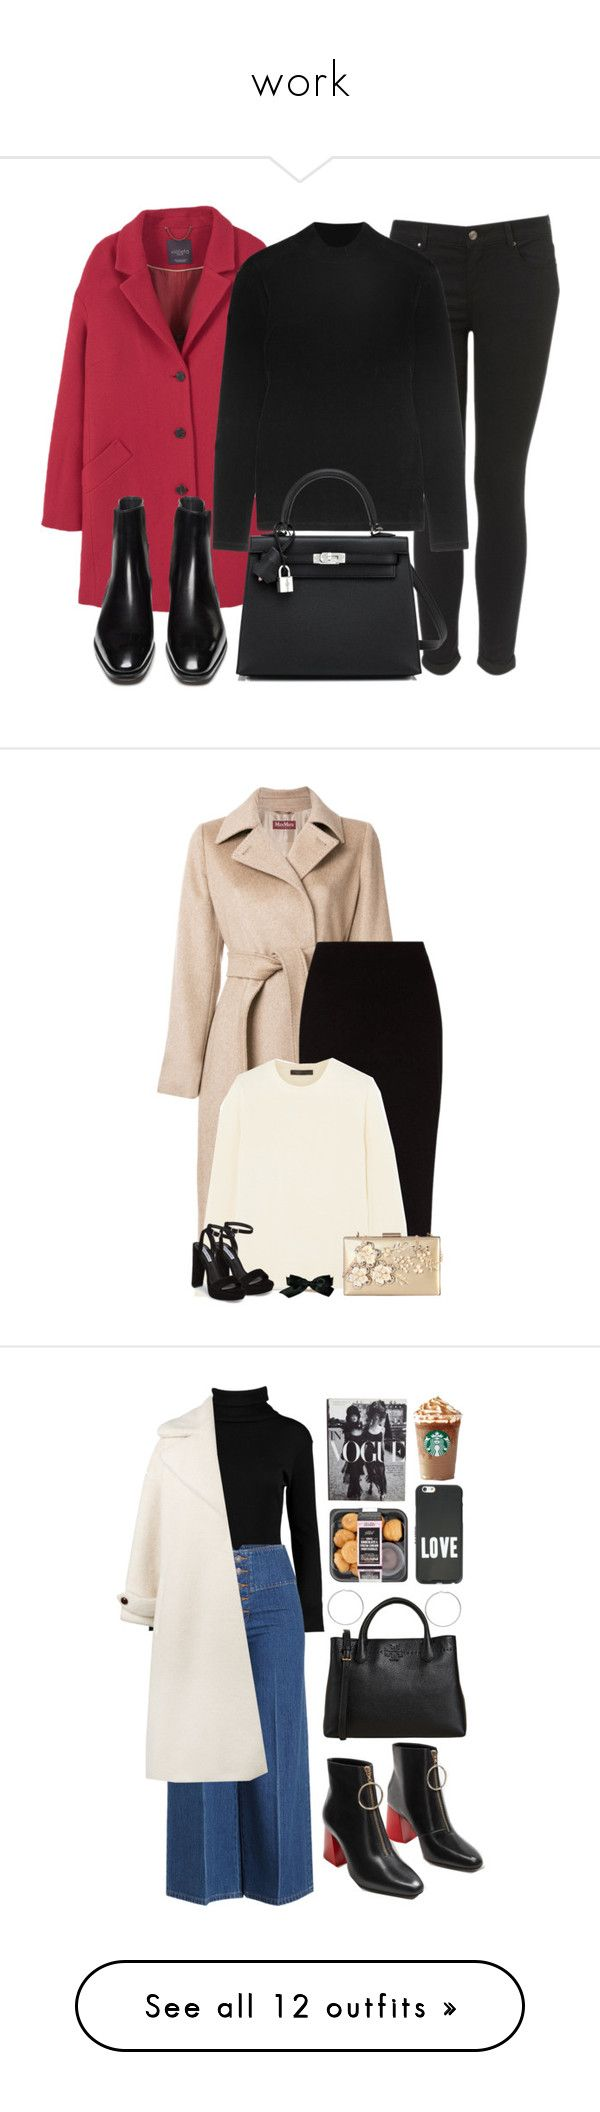 """""""work"""" by rezende-brunafr ❤ liked on Polyvore featuring Violeta by Mango, Topshop, Topshop Unique, Hermès, MaxMara, The Row, Rimen & Co., Steve Madden, Chanel and beoriginal"""